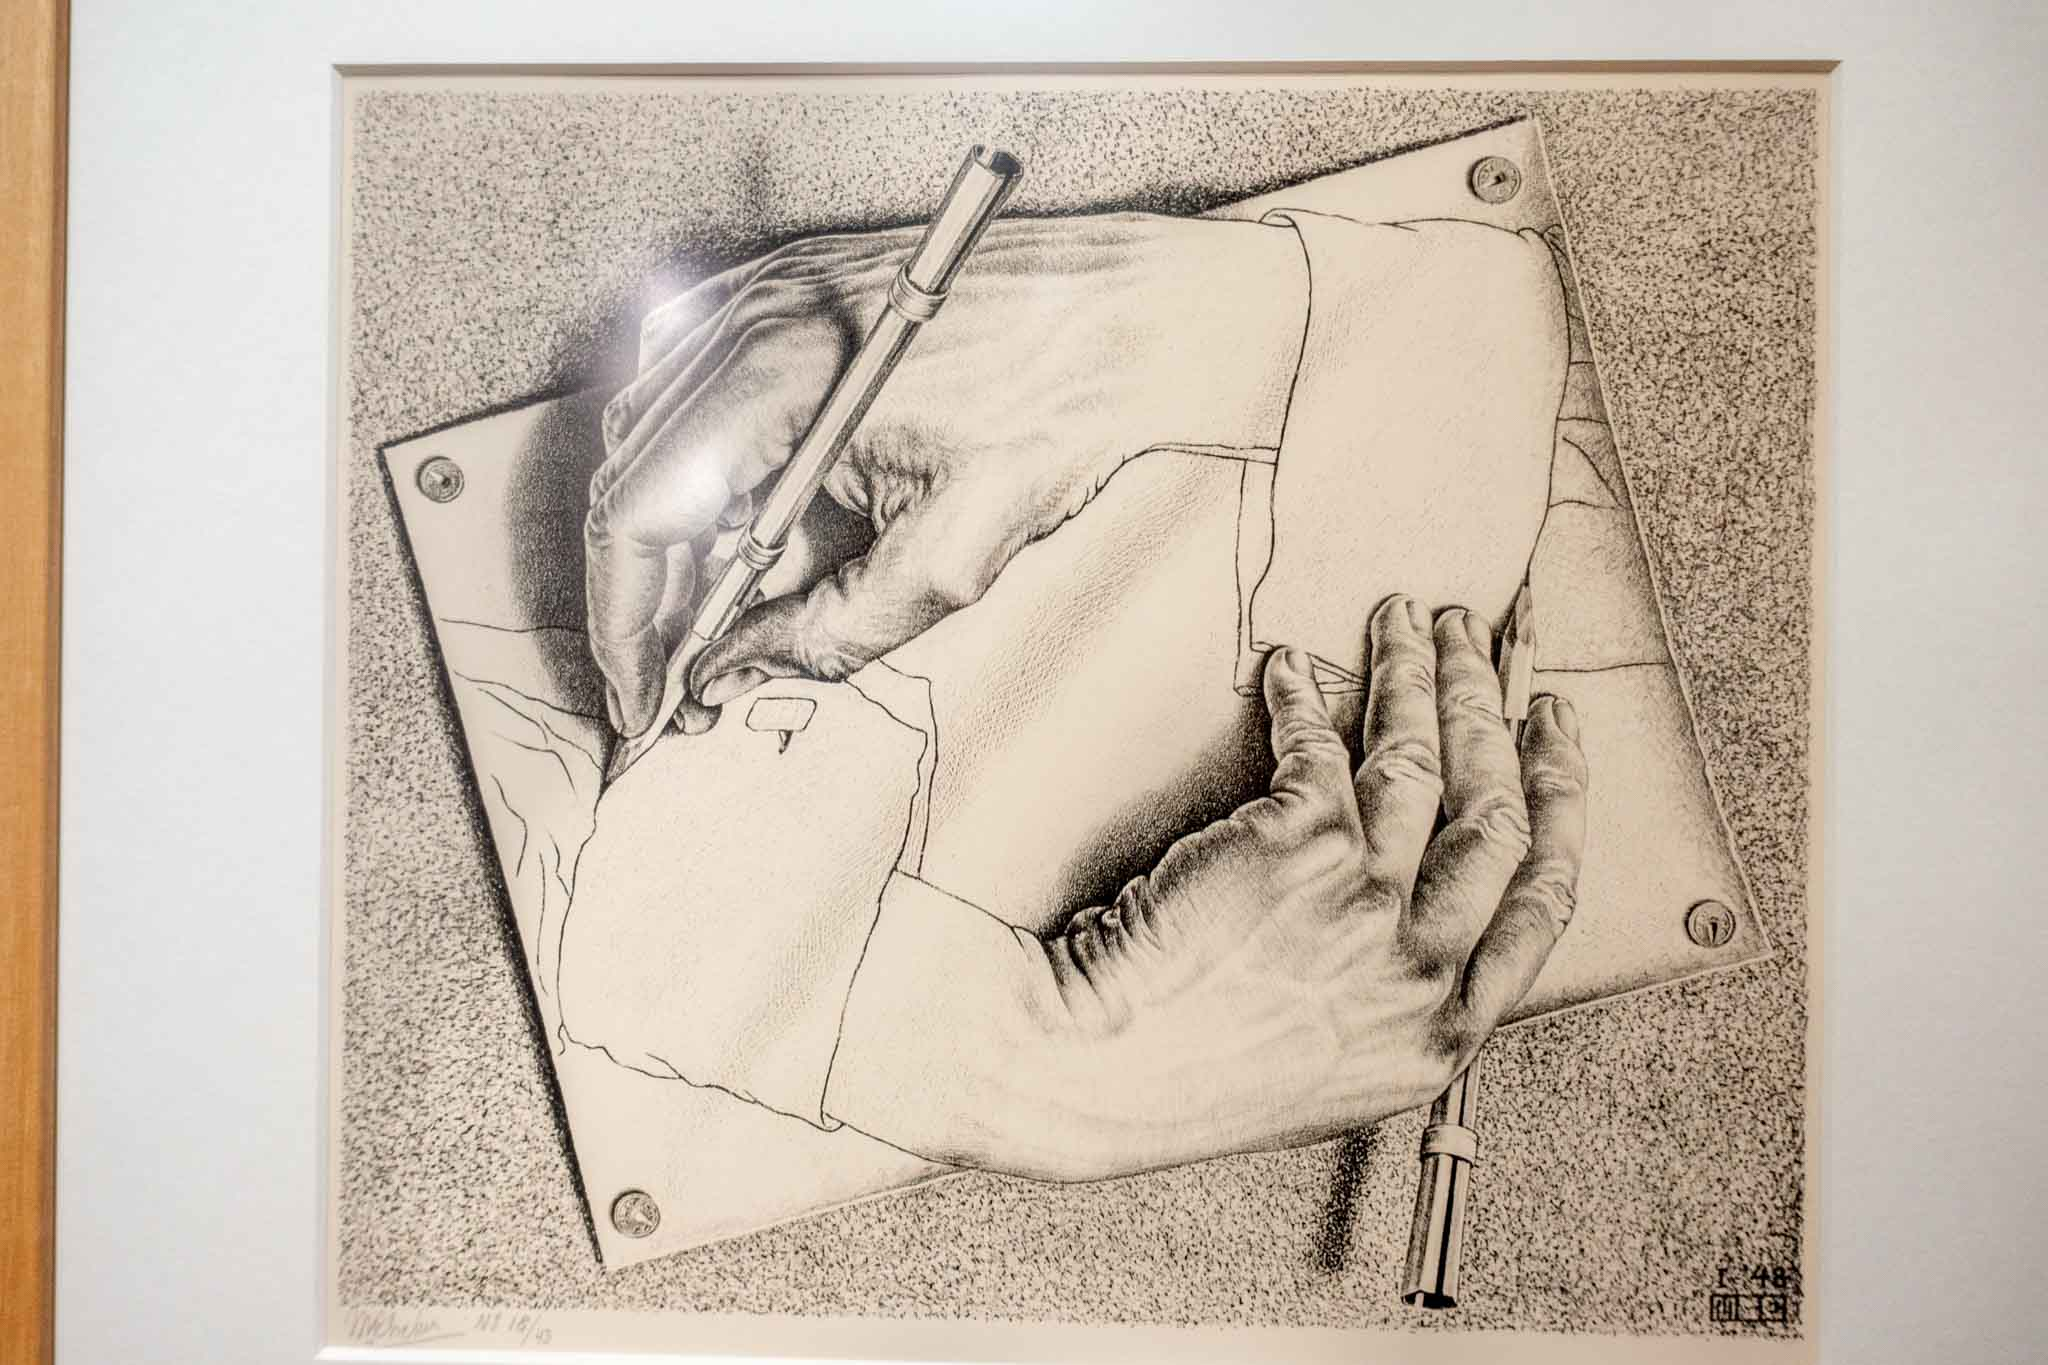 Artwork of two hands drawing each other